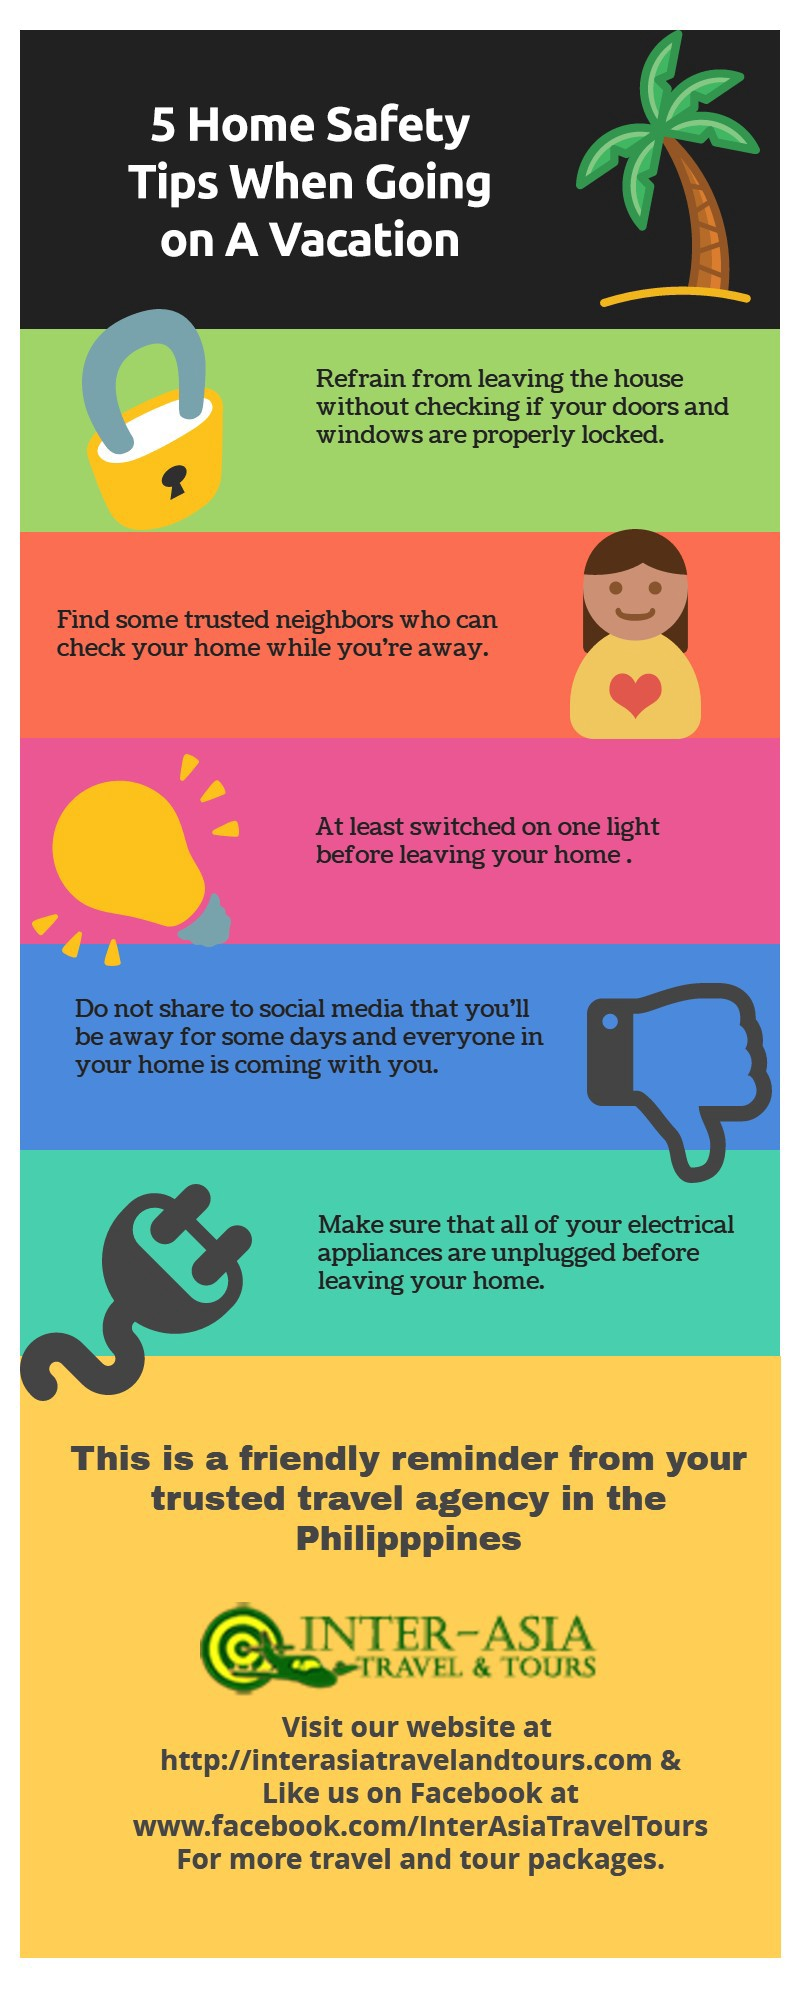 Home Safety Tips on travel safety, pool safety, home construction tips, home security, online safety, home repair, home selling tips, bicycle safety, home emergency preparedness, halloween safety tips, health tips, home tips and tricks, safety training, home maintenance tips, maintenance tips, caregiving tips, home storage tips, home business tips, home management tips, parenting tips, home emergency tips, fire safety, home care tips, baby safety, internet safety, personal hygiene tips,